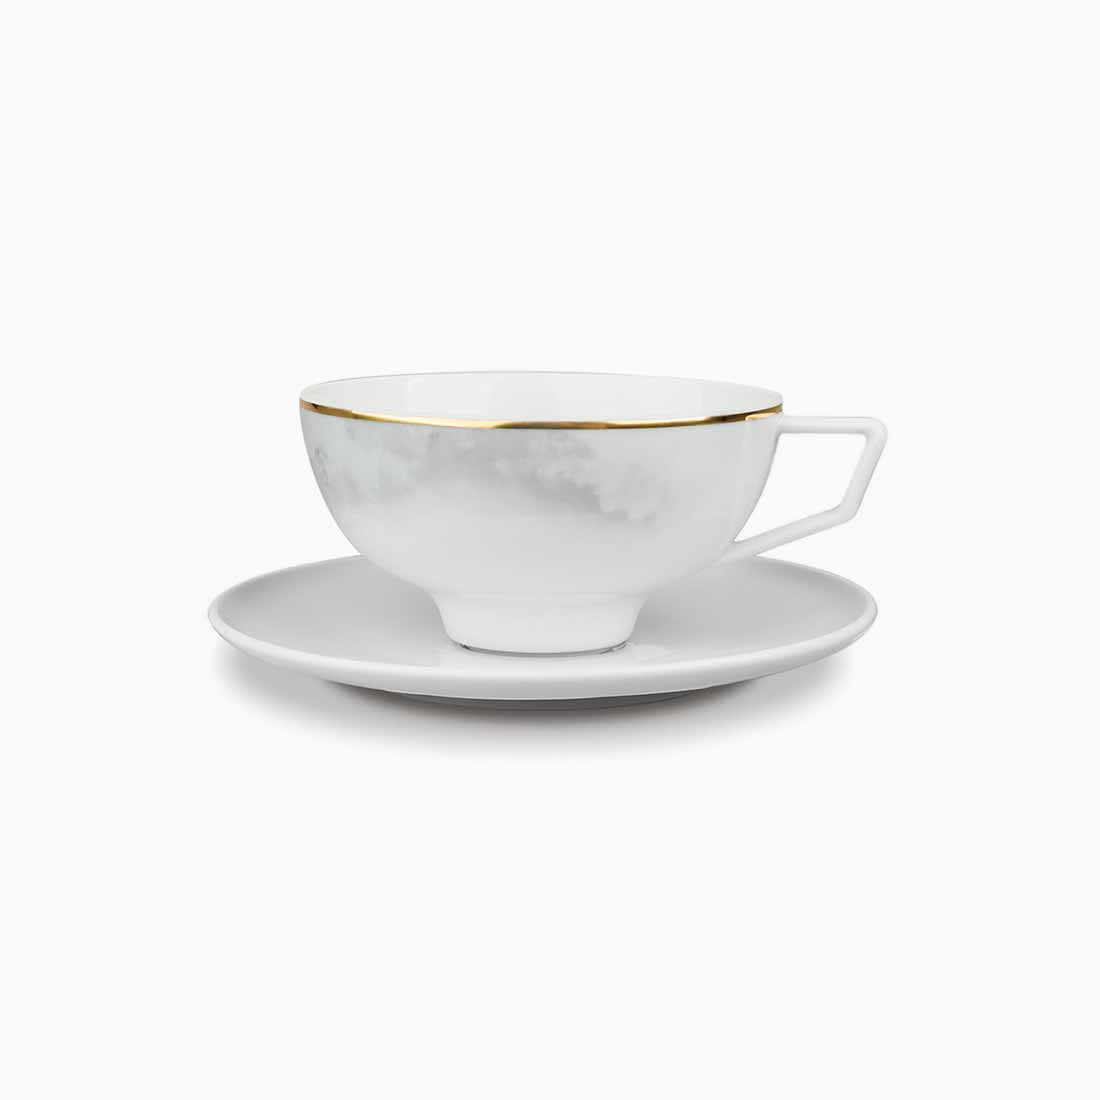 Pomona Teacup and Saucer Grey Tempest with gold line by Bodo Sperlein